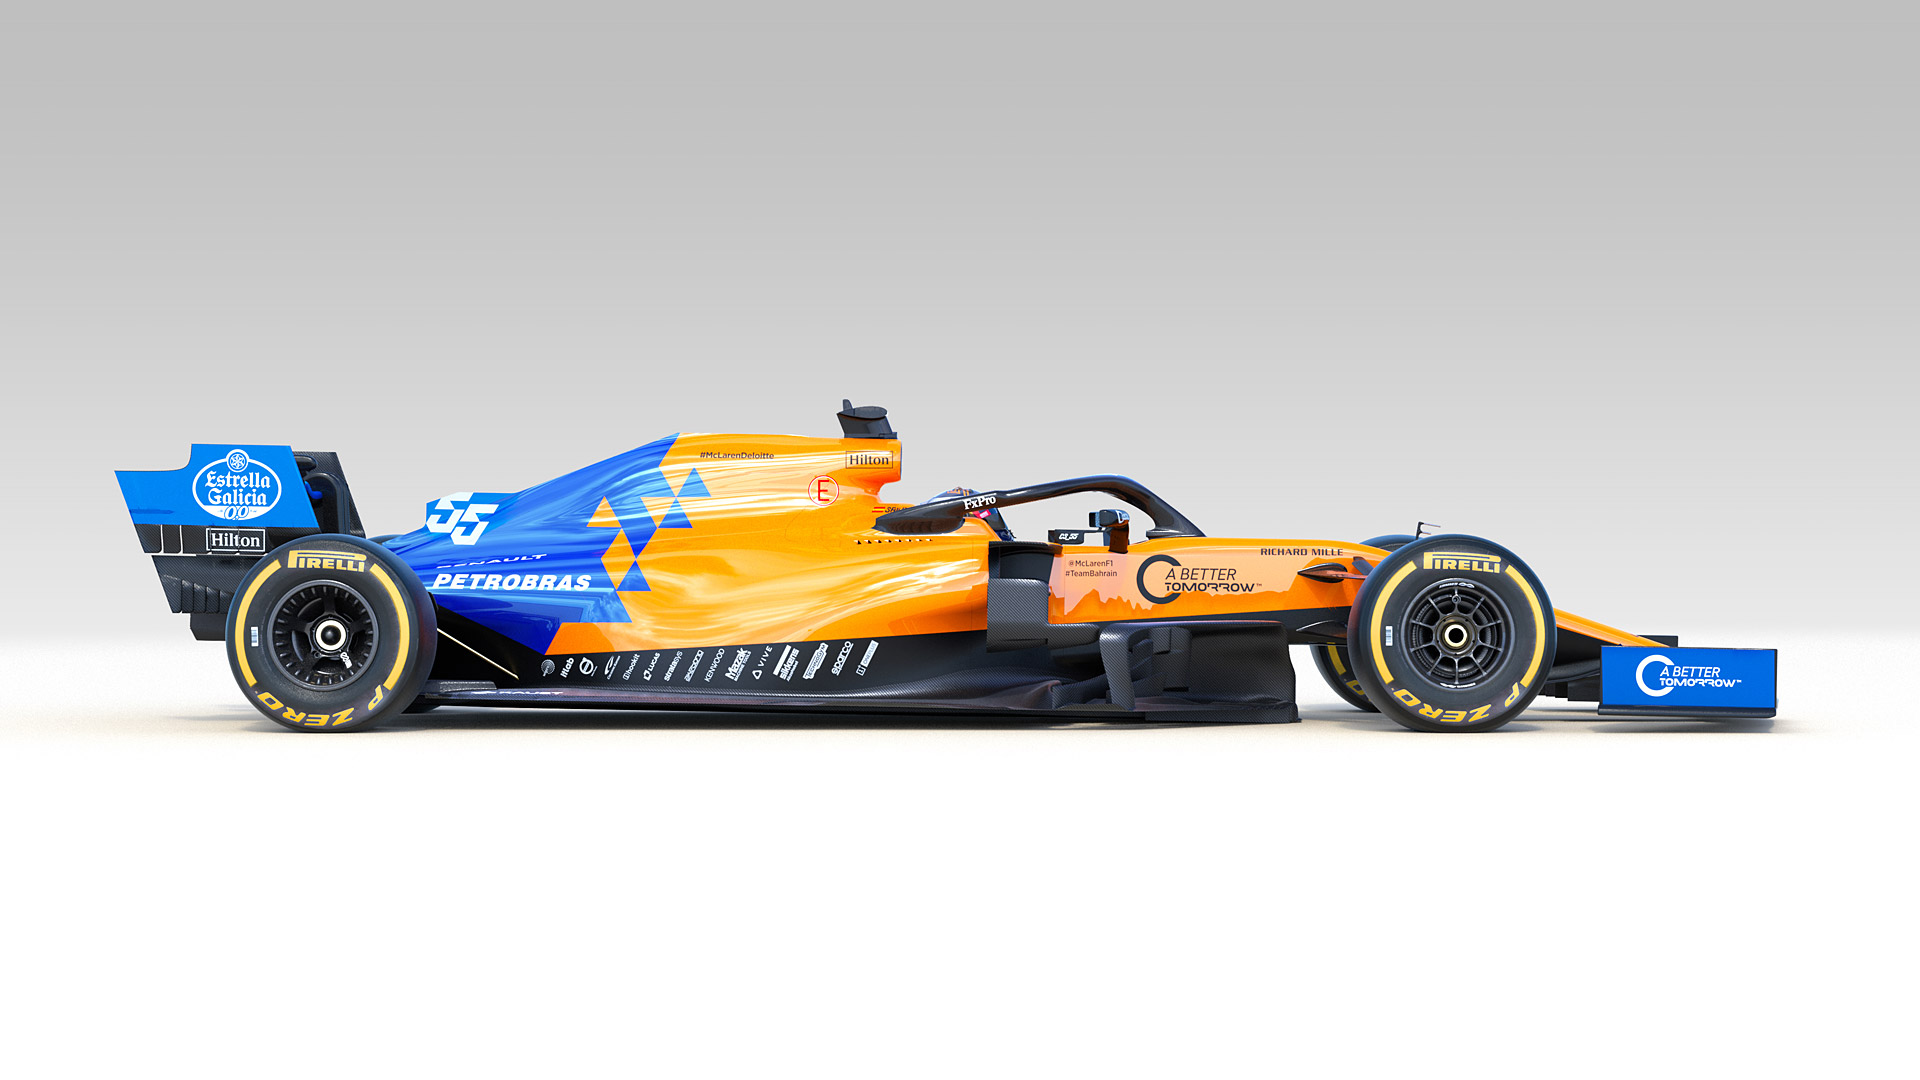 2019 McLaren MCL34 Wallpapers HD Images   WSupercars 1920x1080